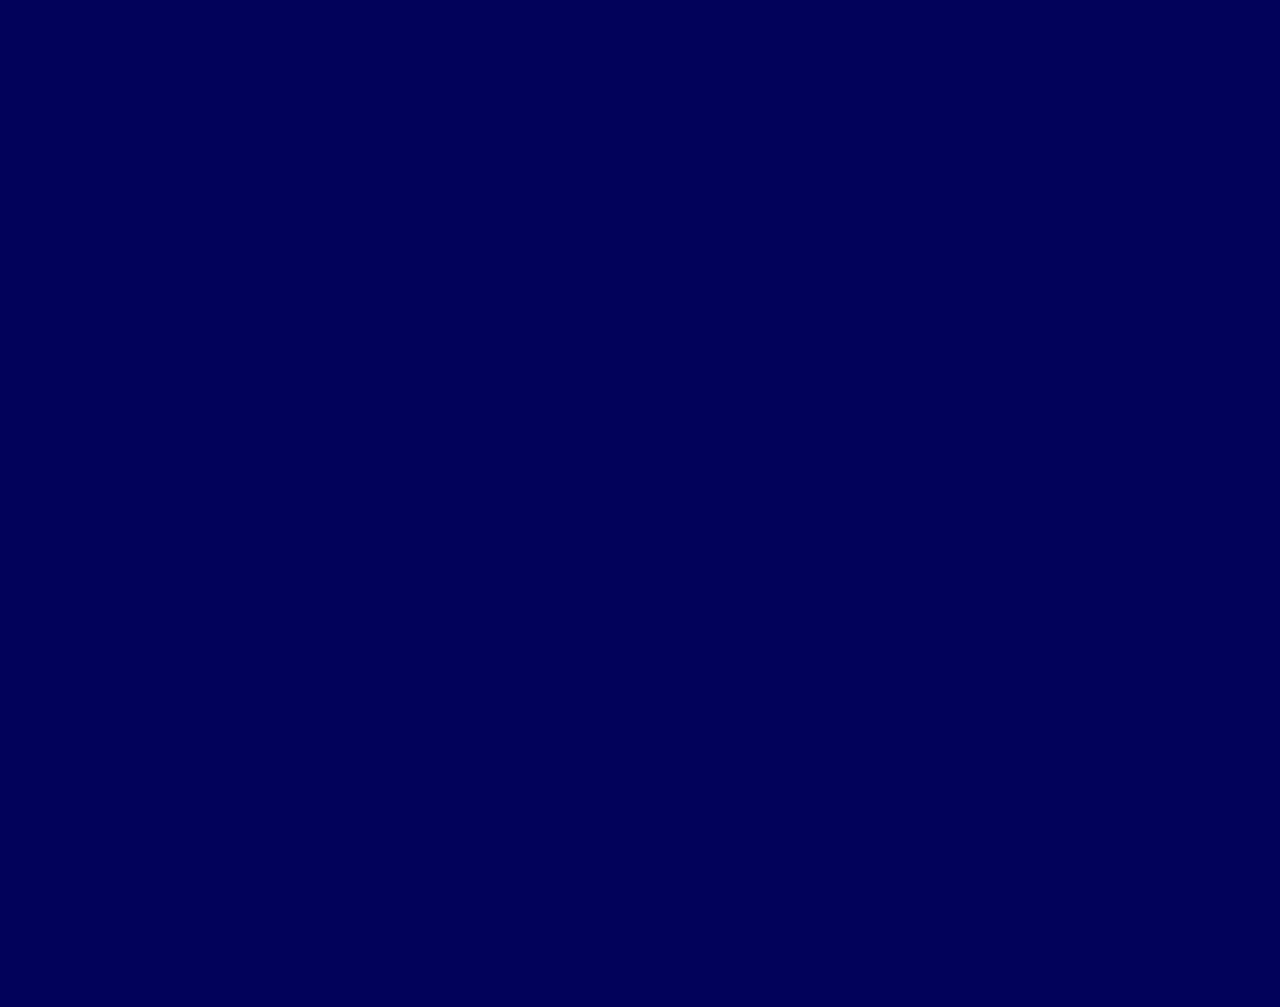 Dark Navy Blue Color